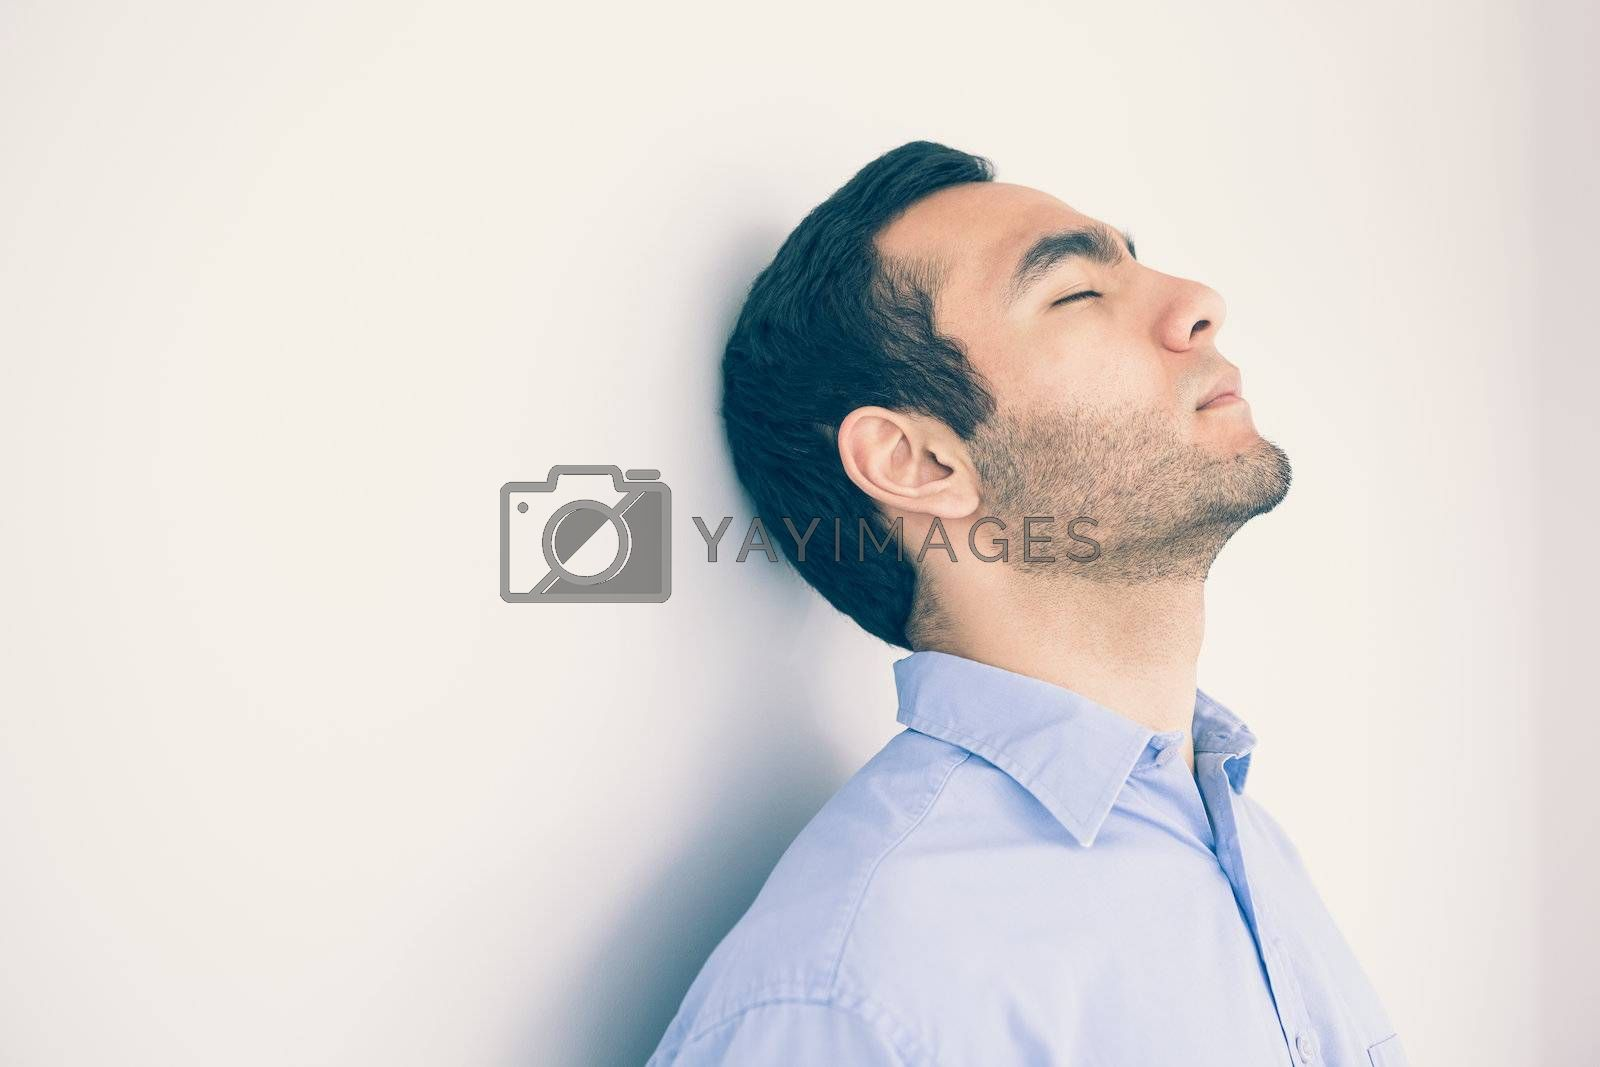 Thoughtful man leaning against a wall by Wavebreakmedia